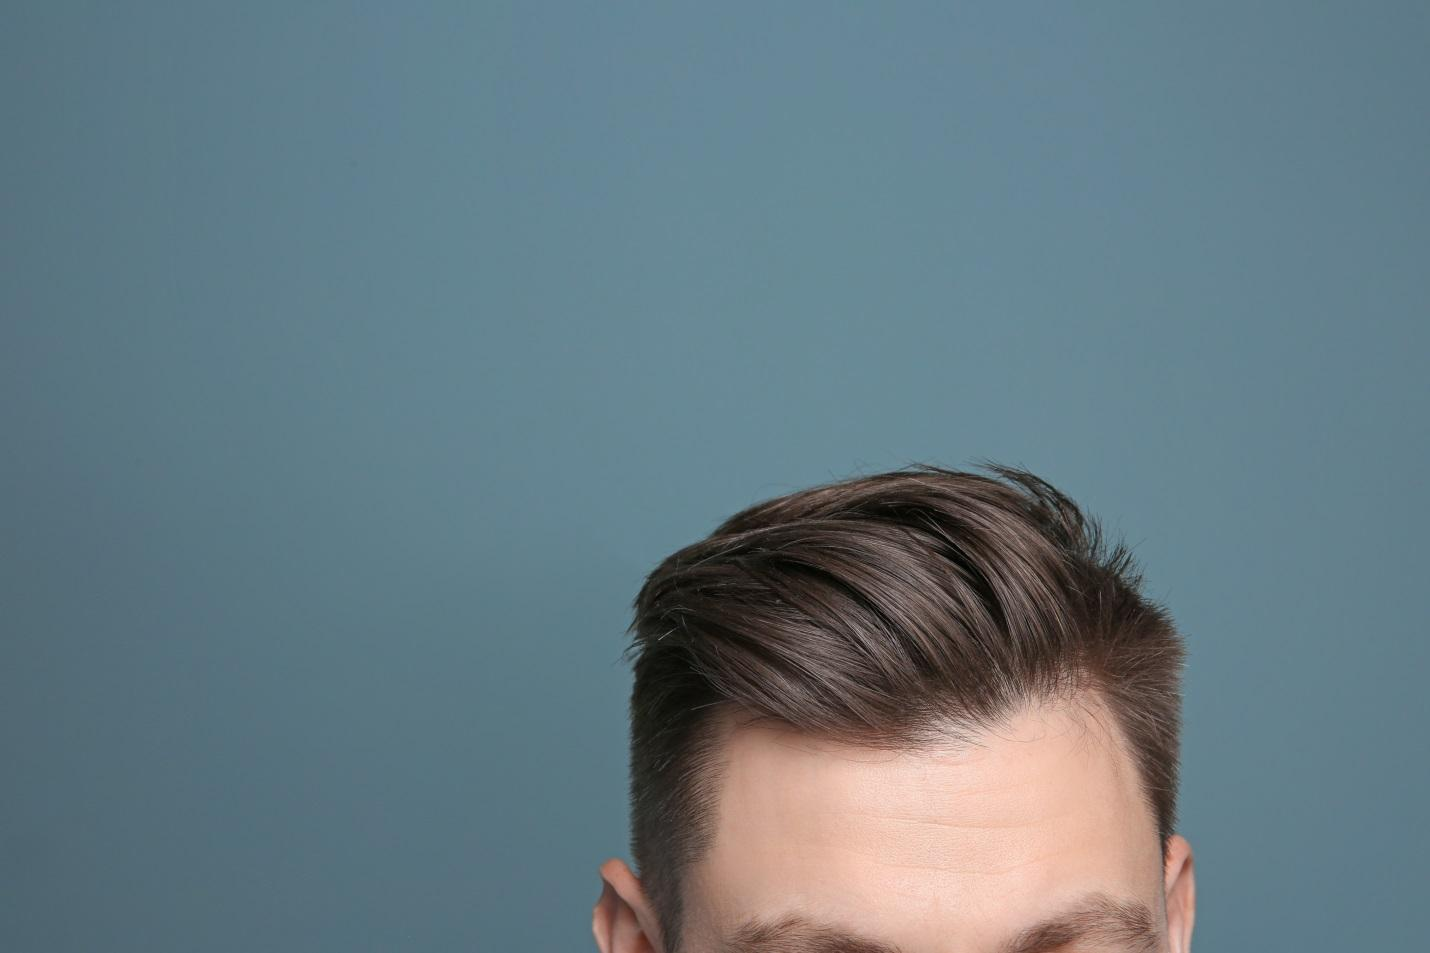 C:\Users\Danièle Adler\Downloads\Canva - Young man with hair loss problem on color background.jpg